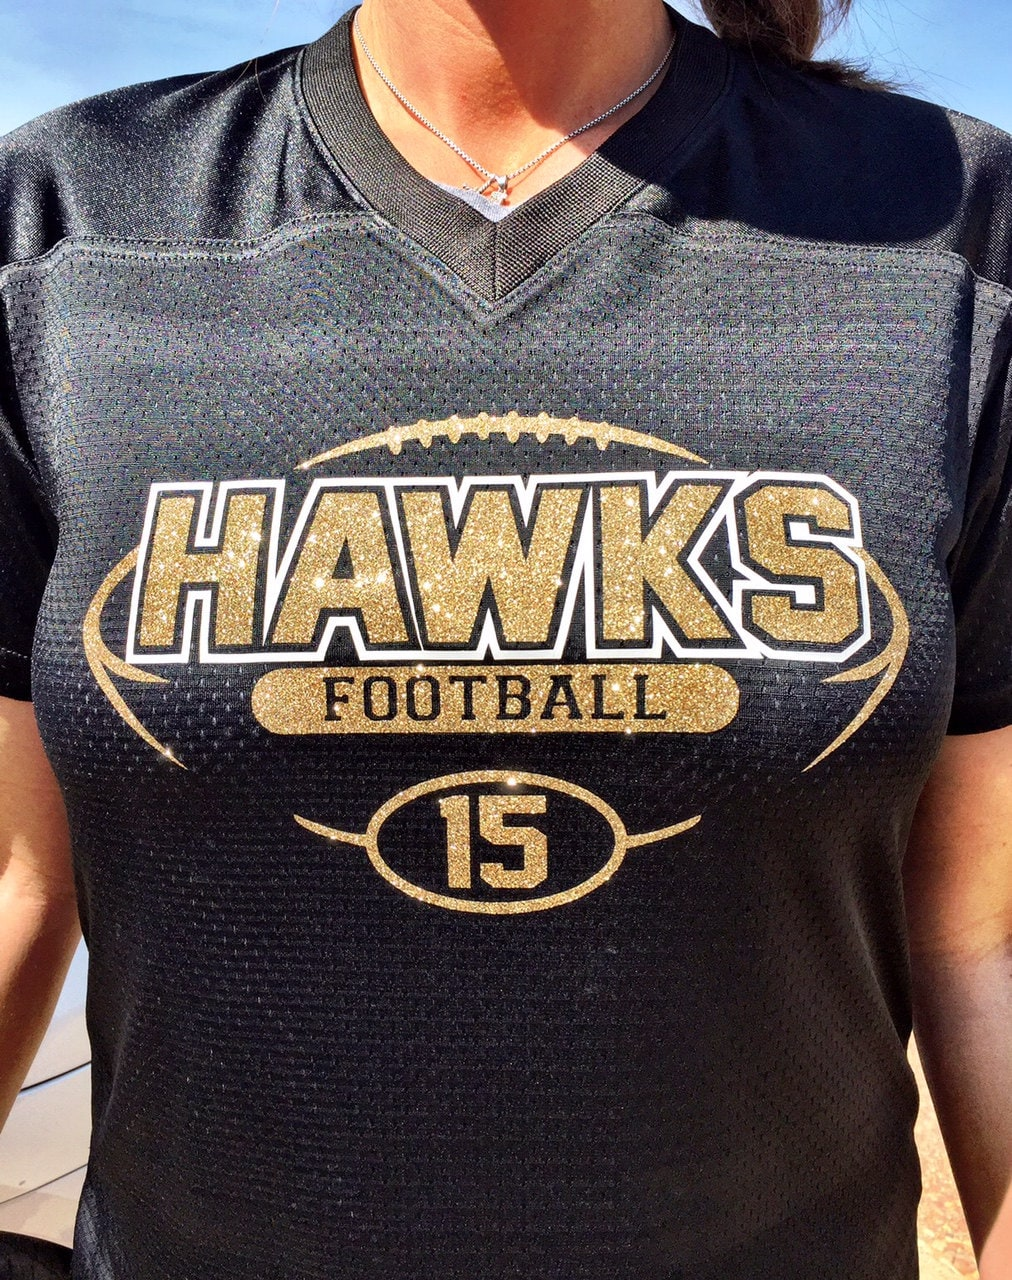 4bab0d81a Bling Football Jersey. gallery photo ...